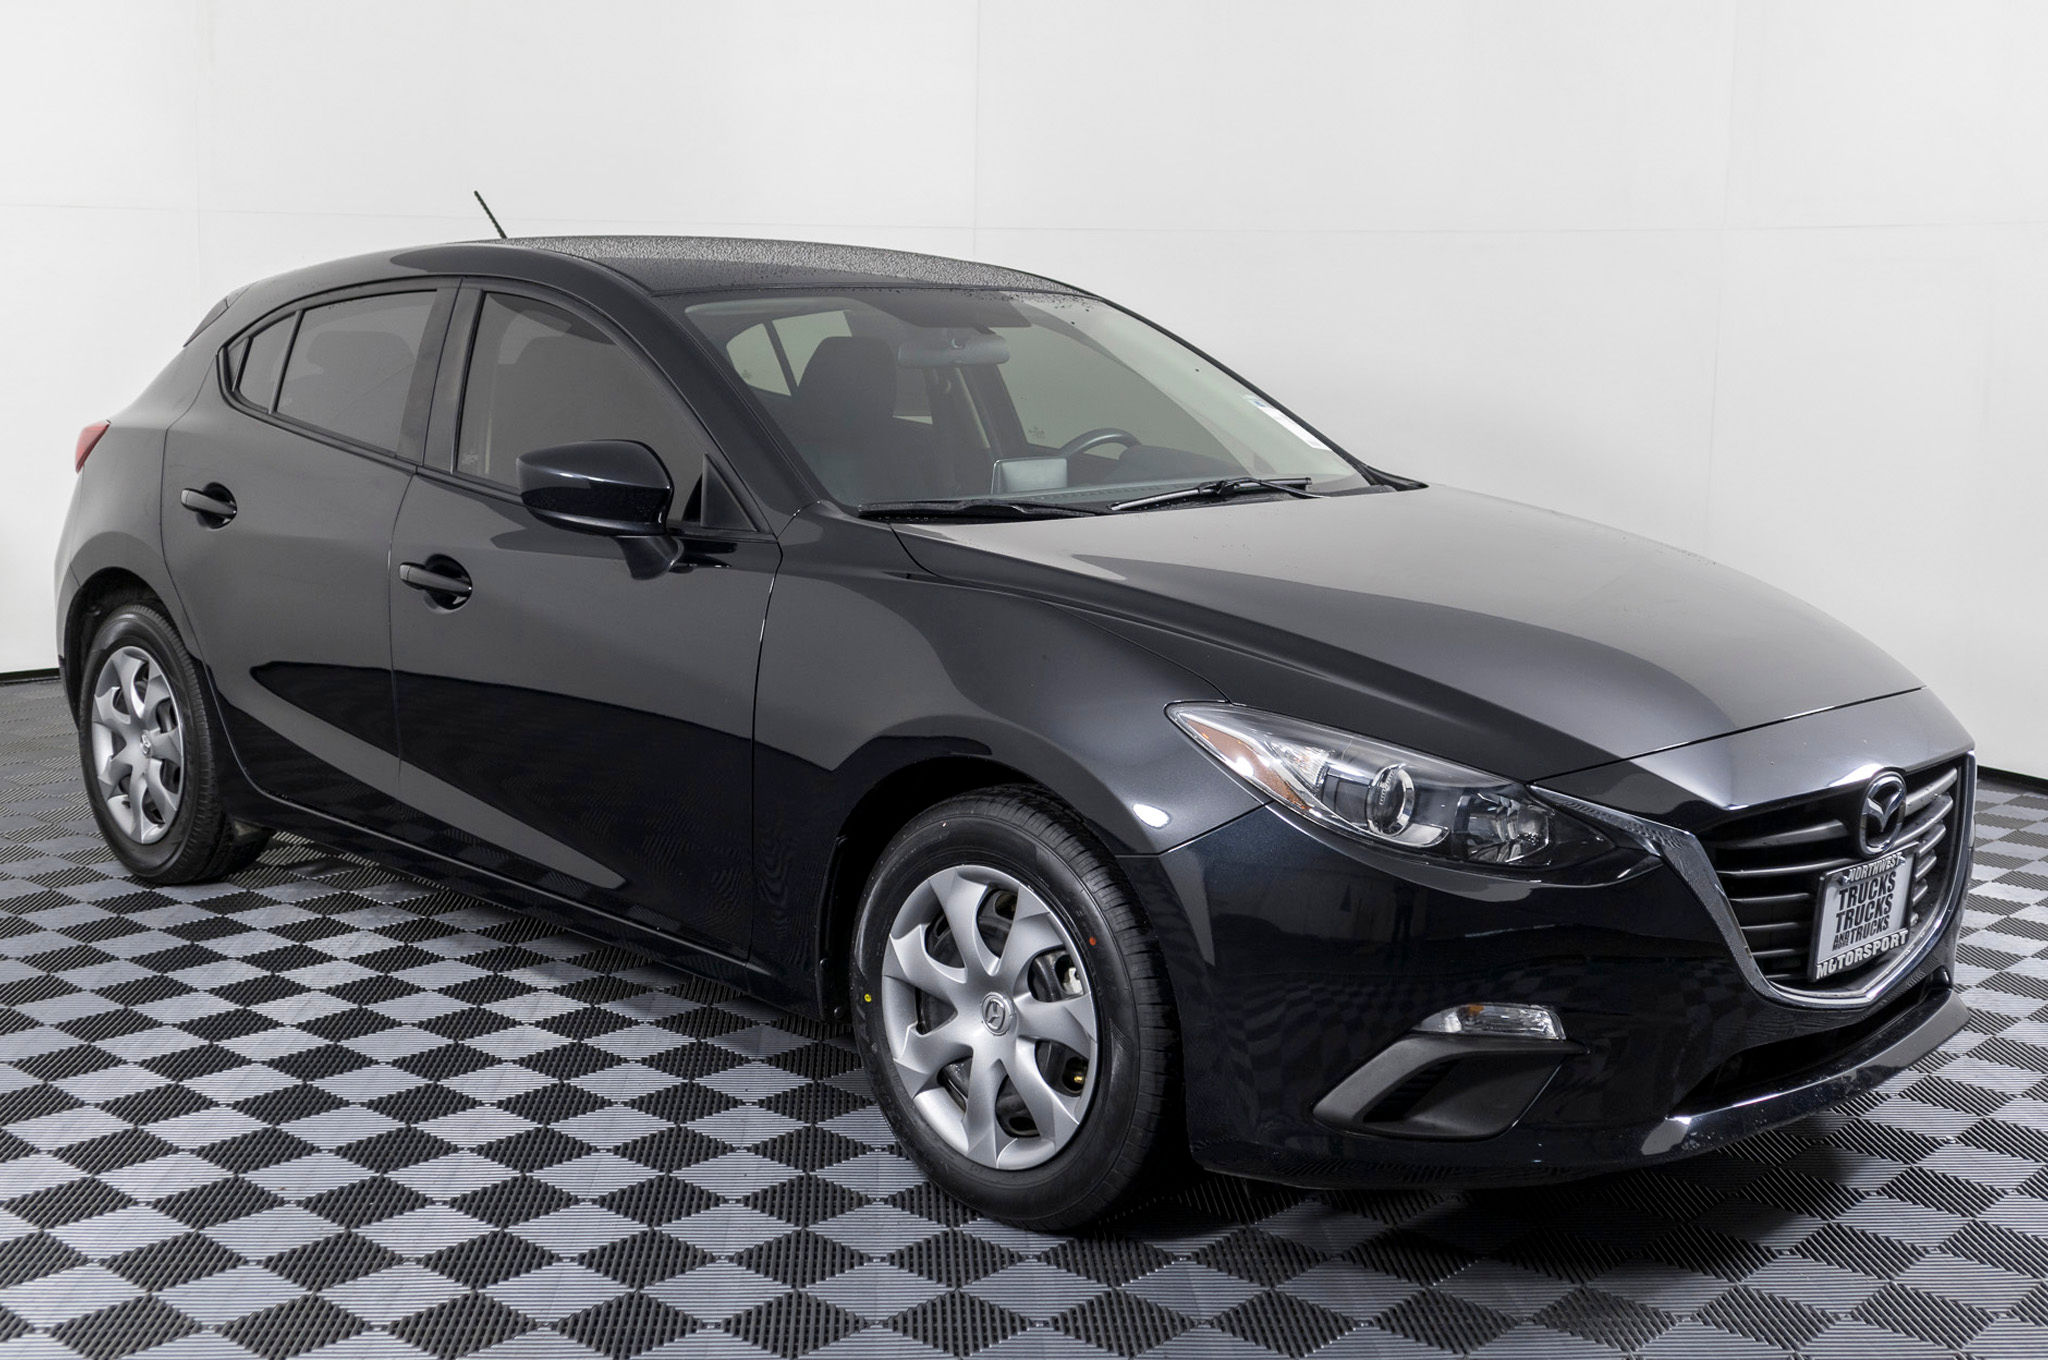 gs in mazda ac of gr for sky montreal deal elect pending unique sale used